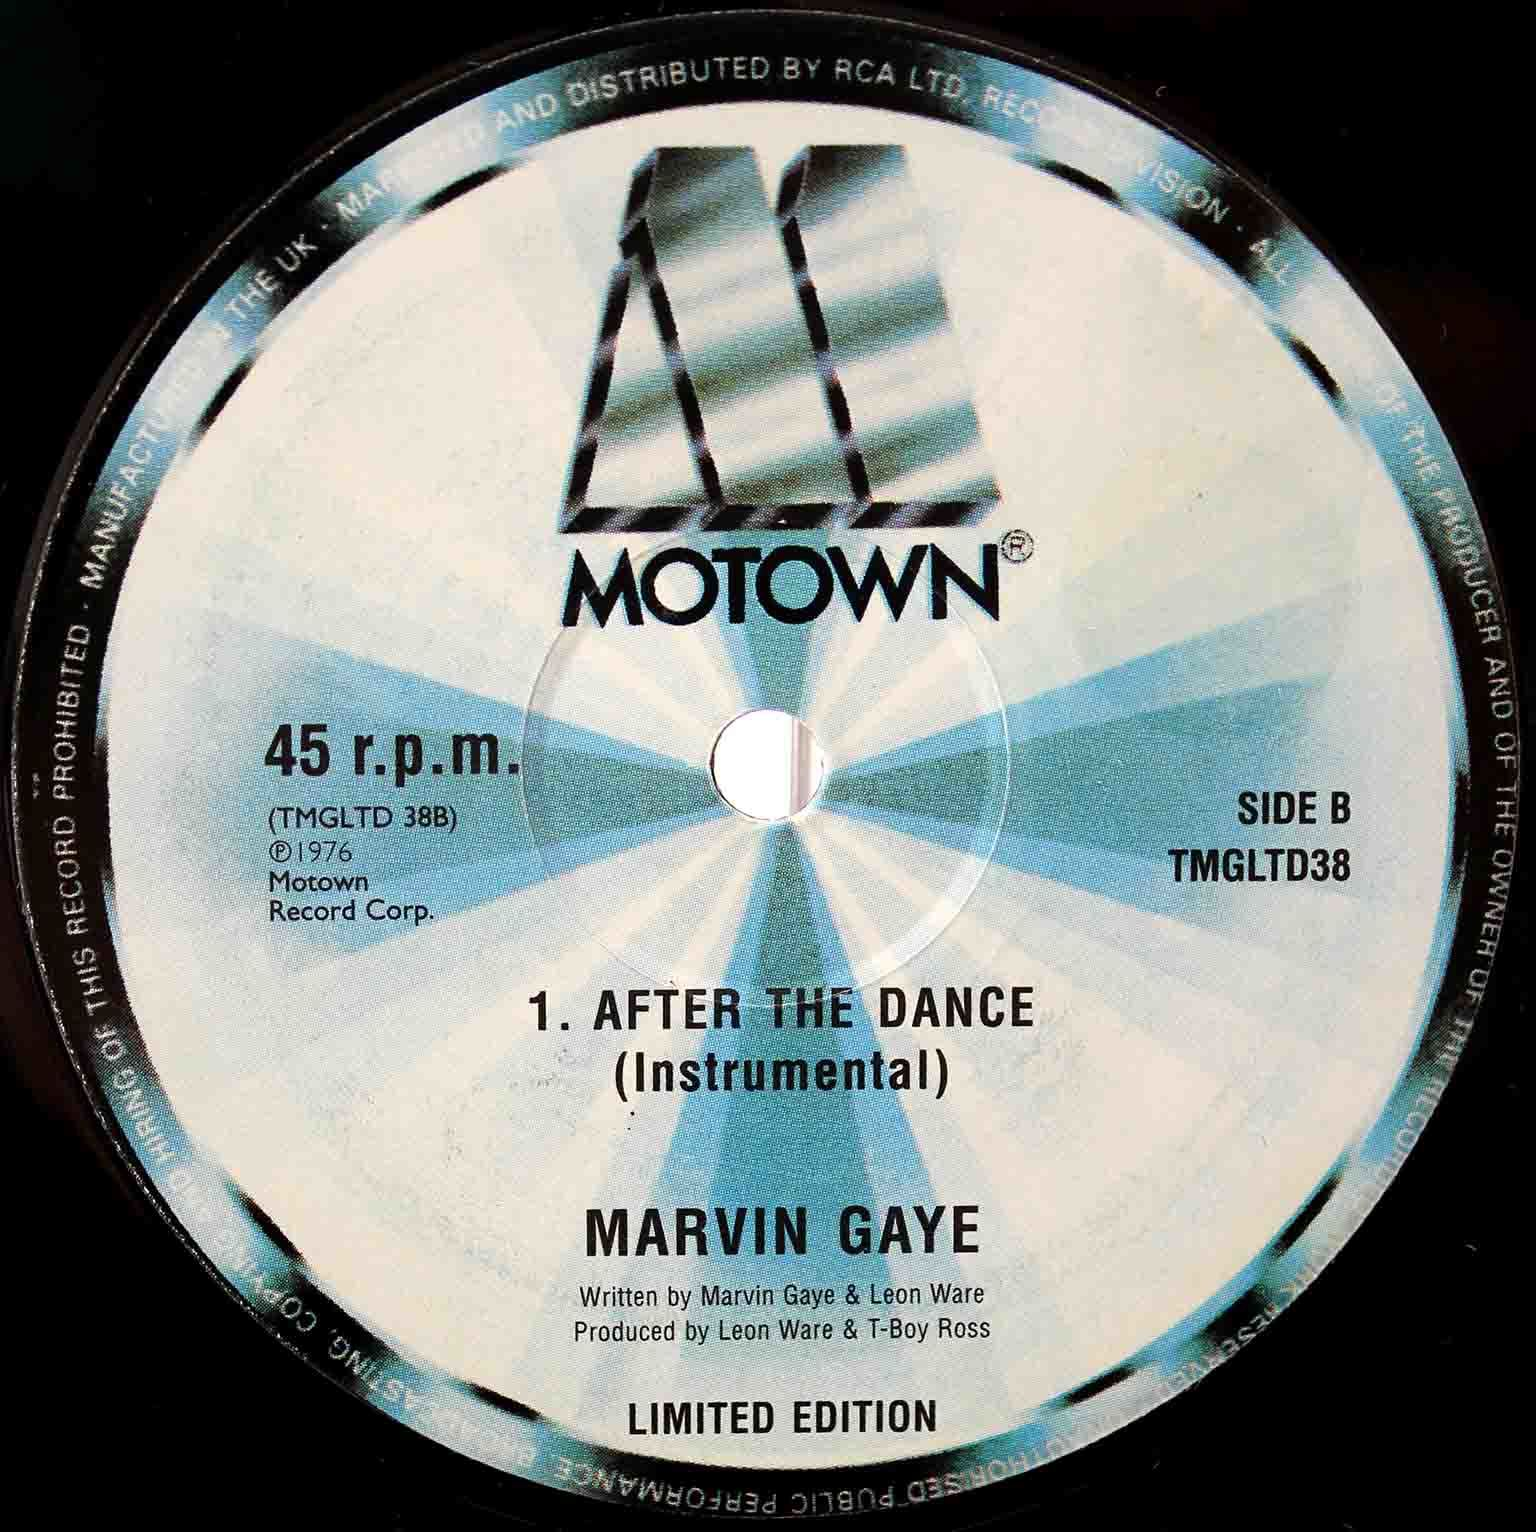 Marvin Gaye – after the dance 04